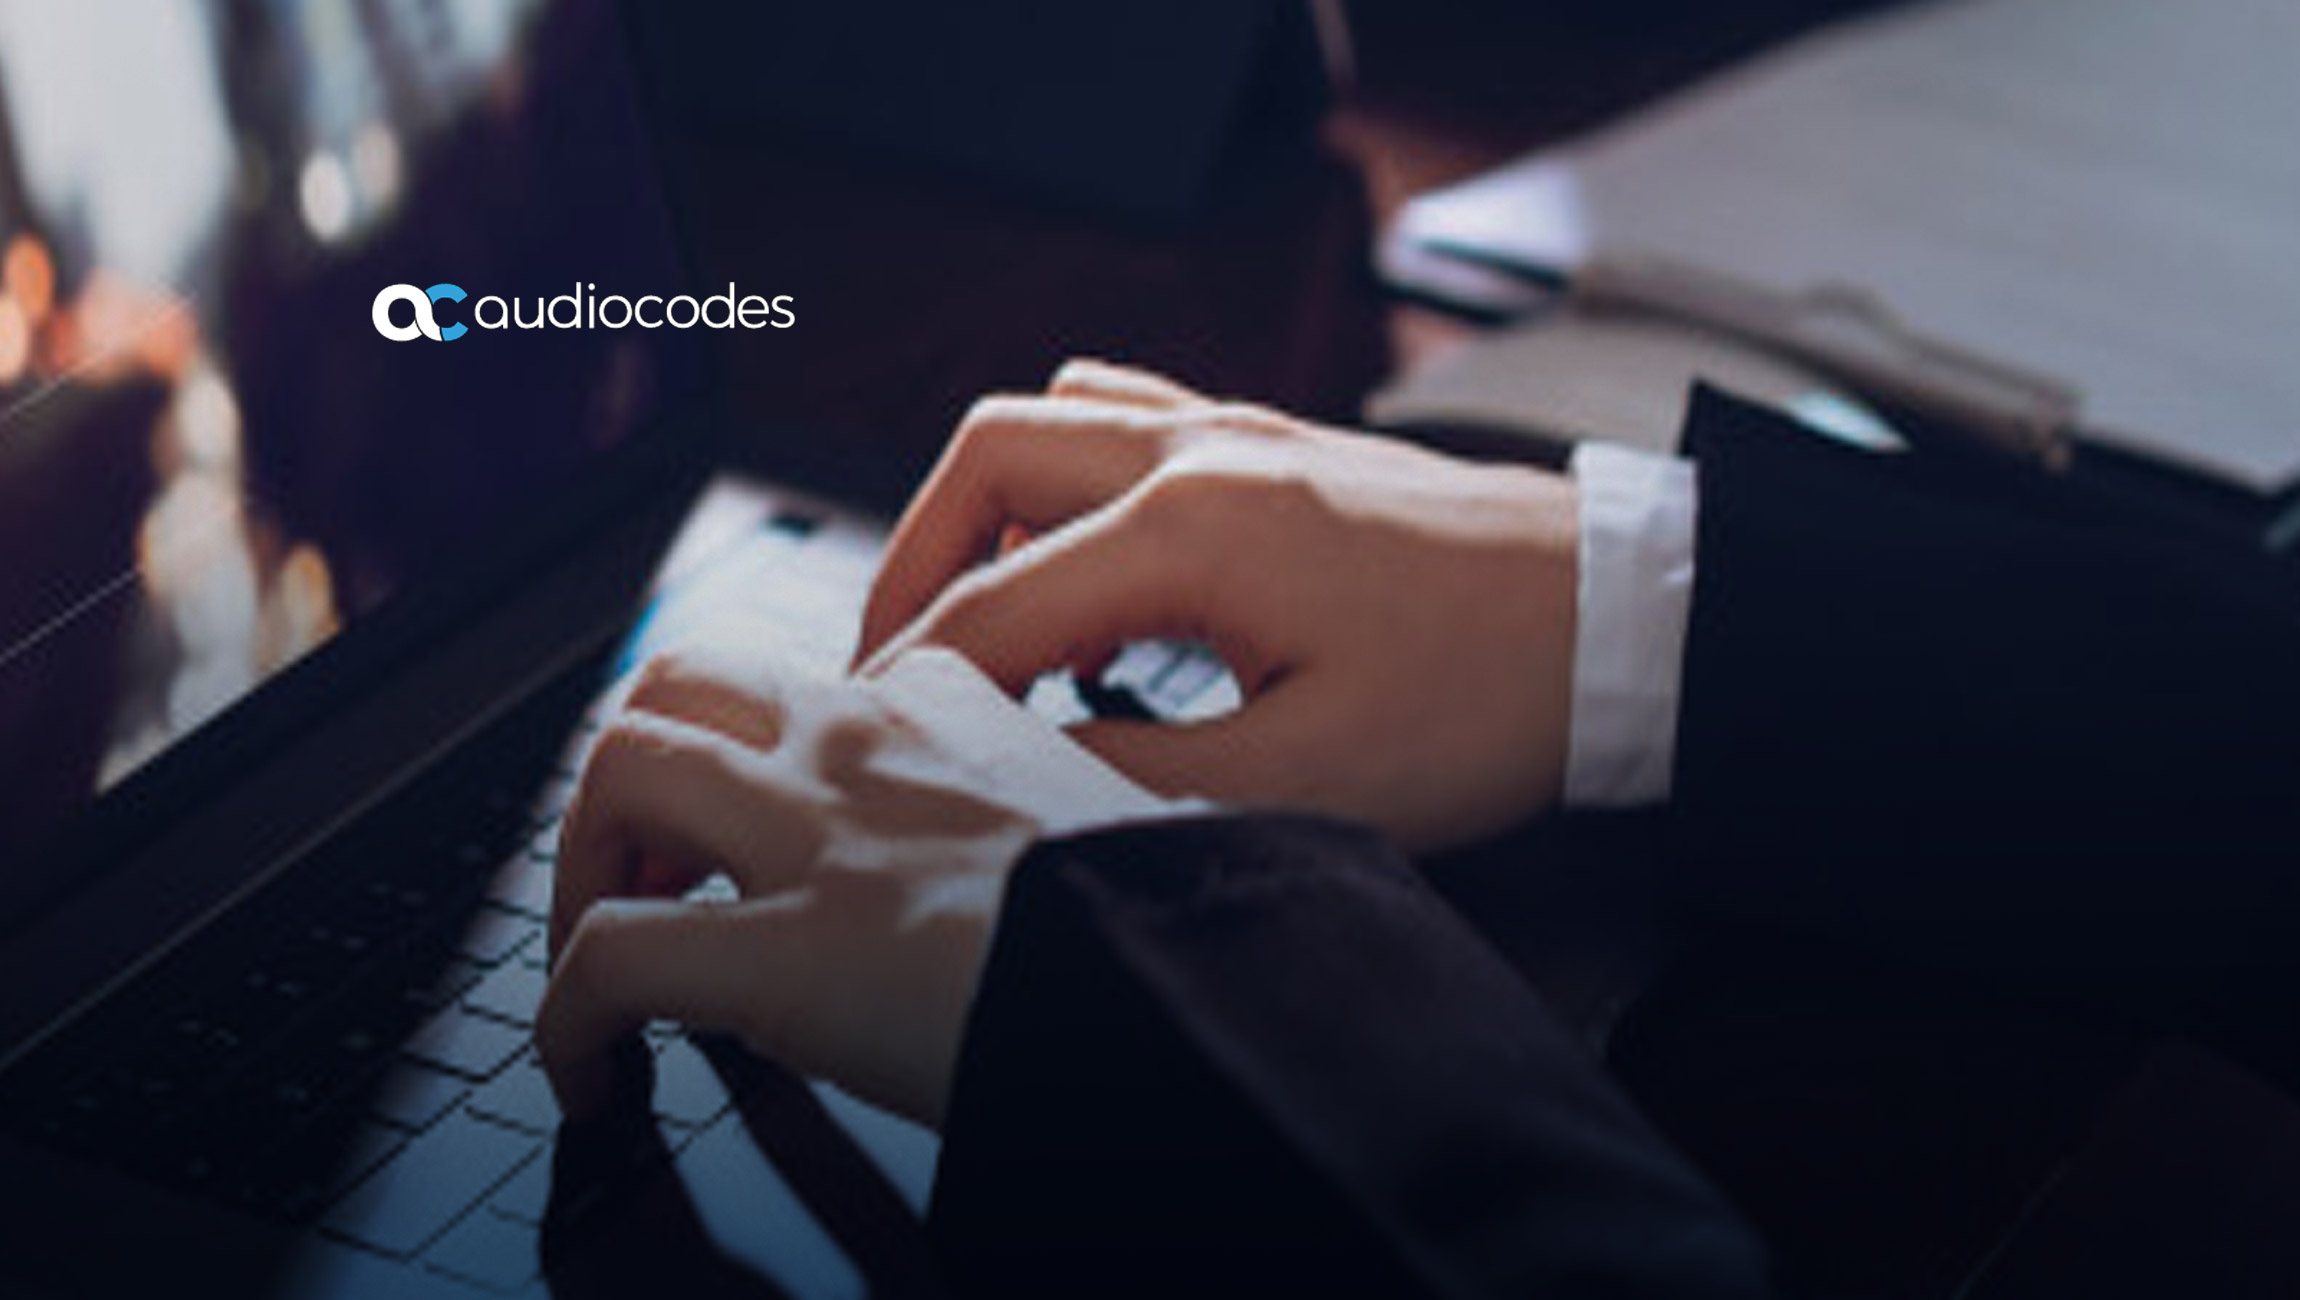 AudioCodes-Launches-SmartTAP-360⁰-Live-Recording-Solution-as-a-Service-for-Microsoft-Teams